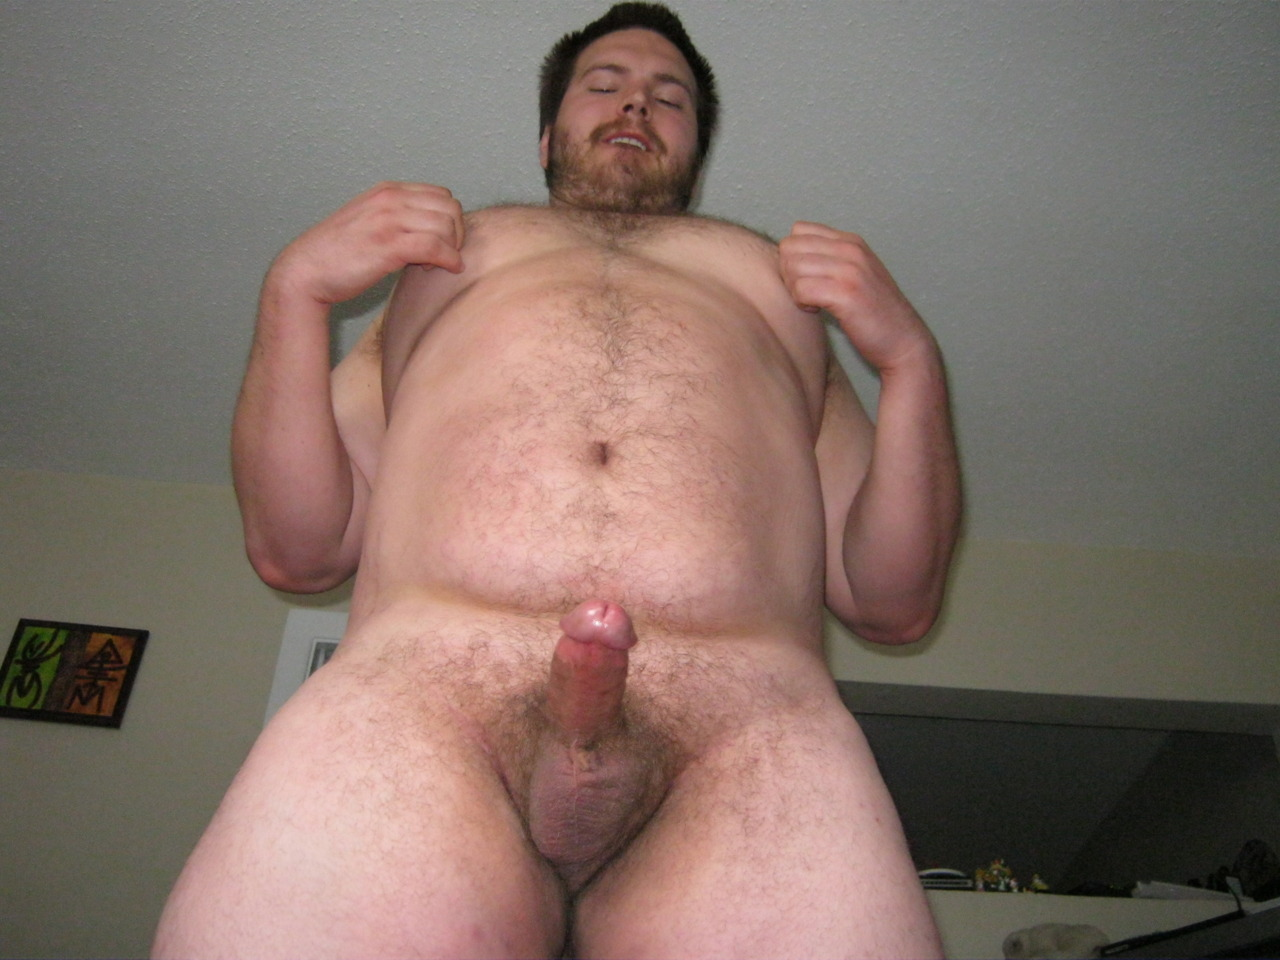 Impossible Hairy men nipples fuck video free